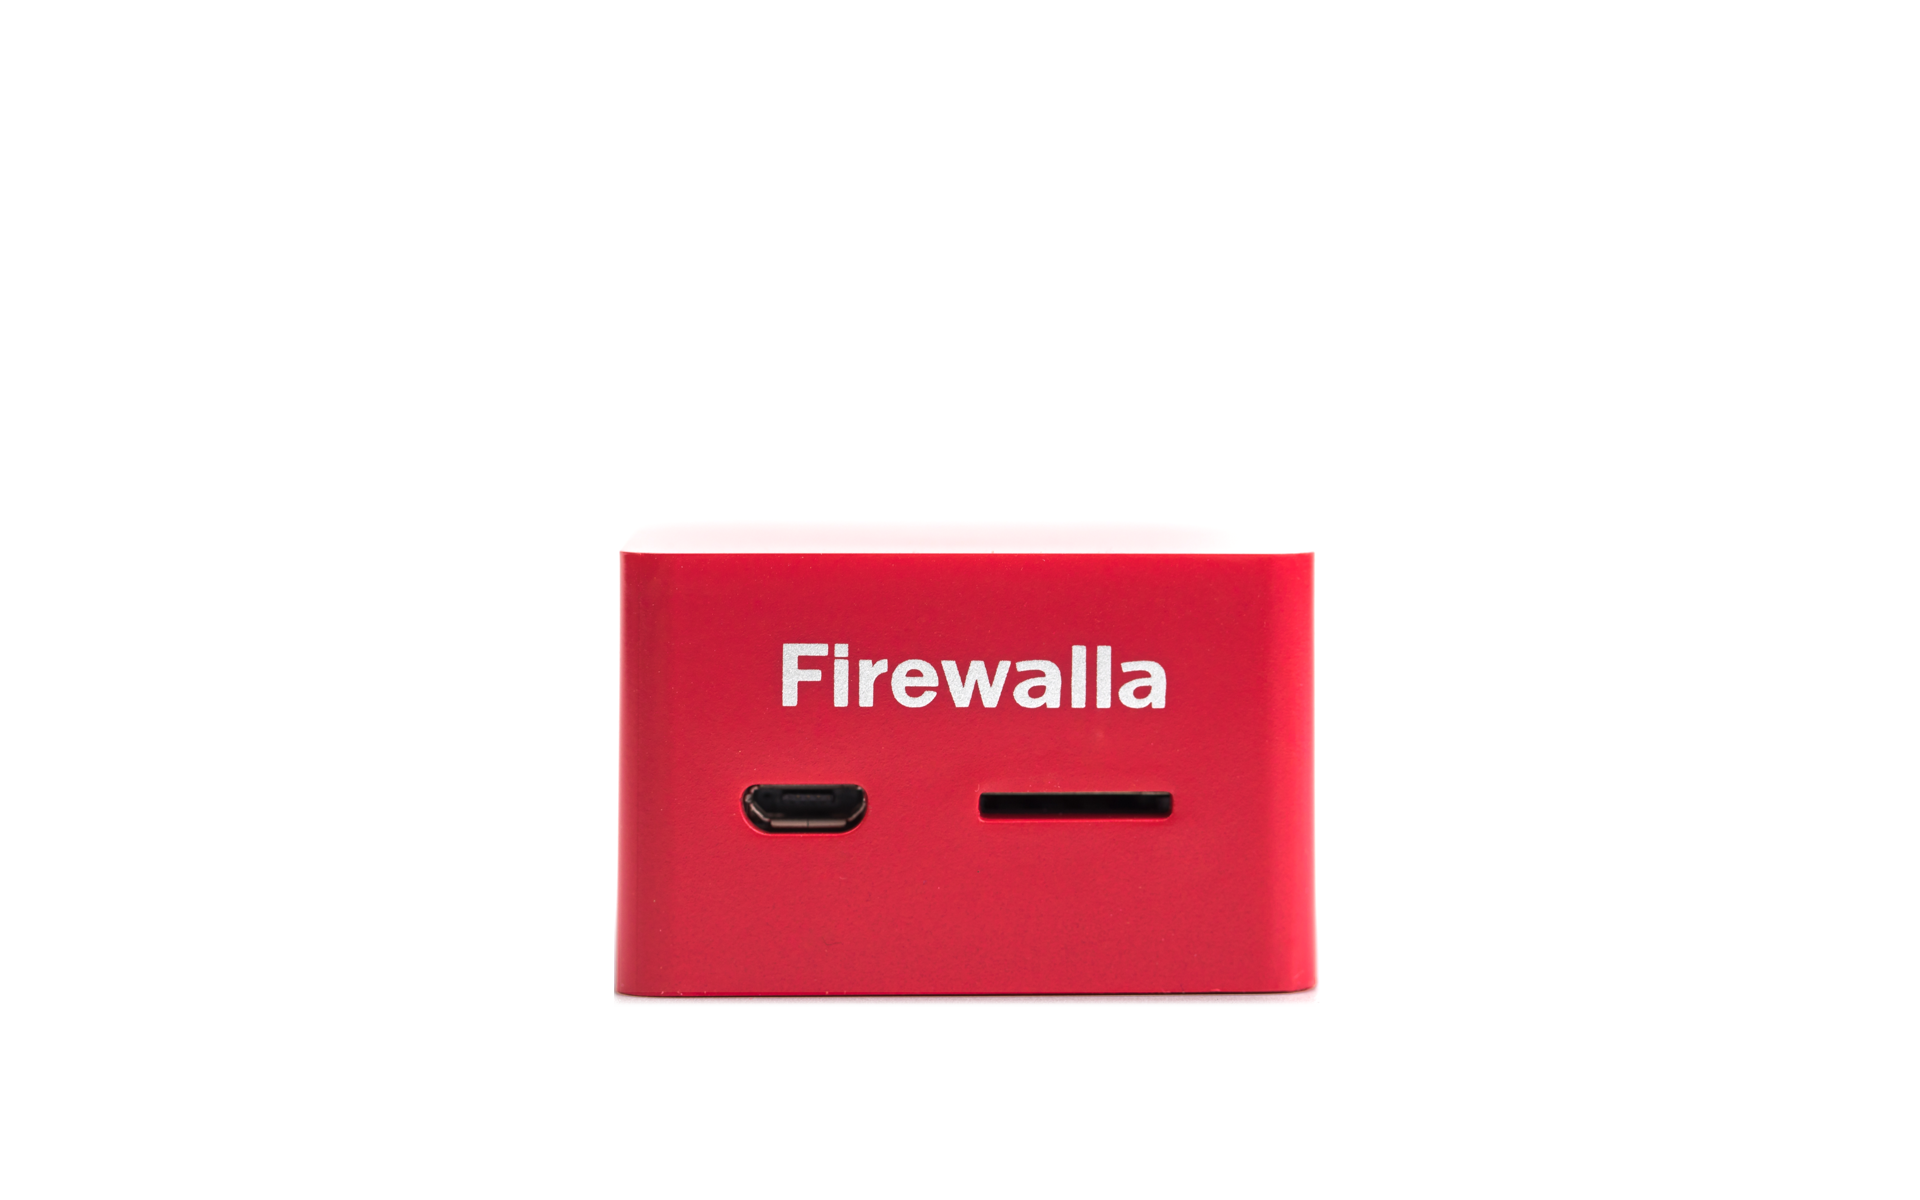 Firewalla Red: Smart Cyber Security Firewall Appliance Protecting Your Family and Business (Ships Worldwide)